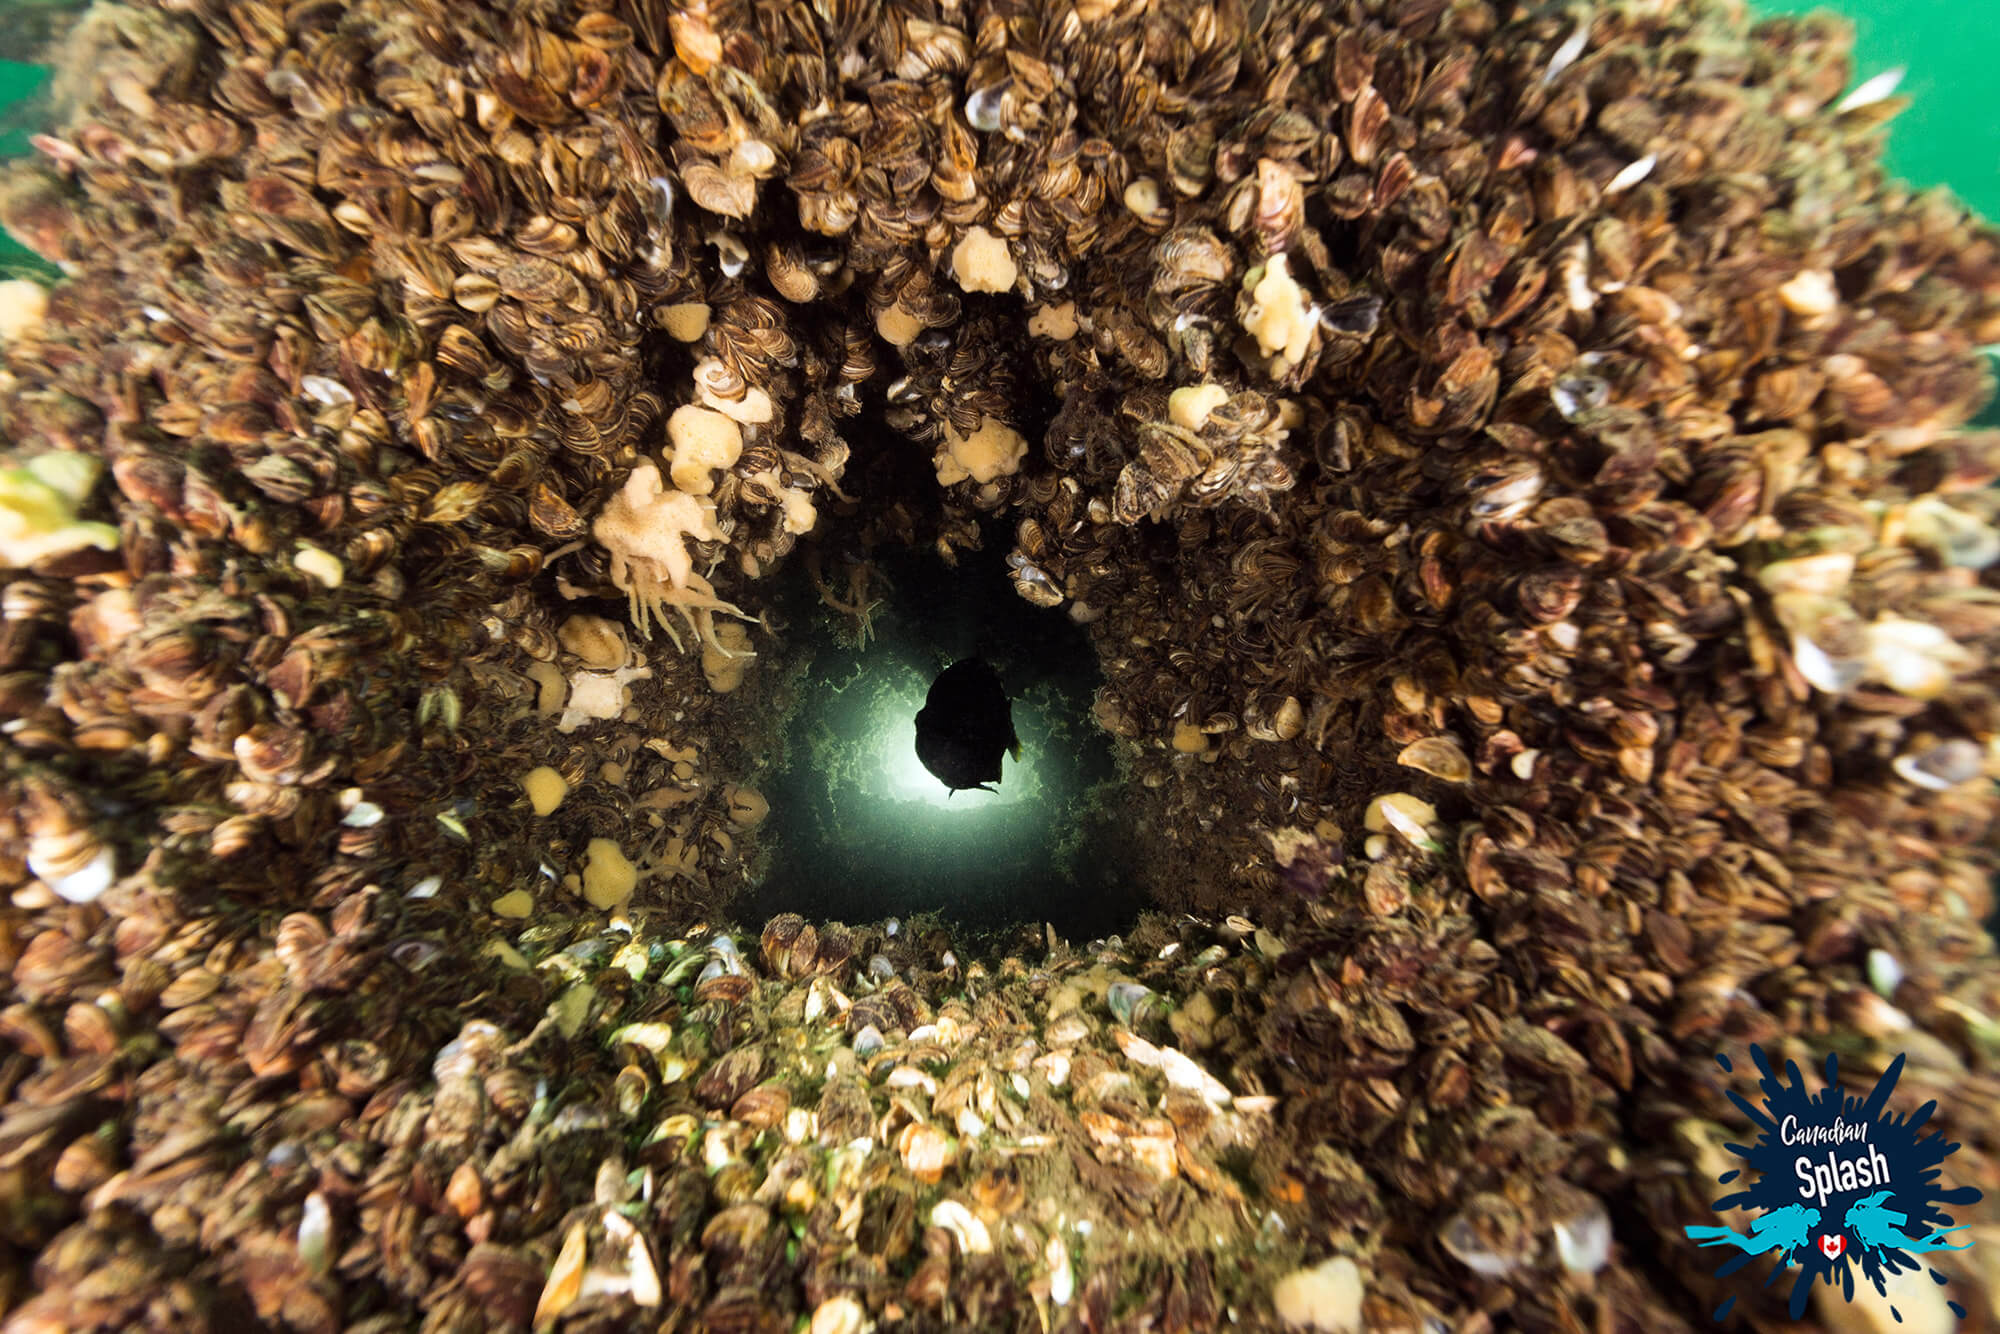 A Fish Backlight Underwater Through A Zebra Mussel Clogged Port In The Rothesay Shipwreck, Brockville, Ontario